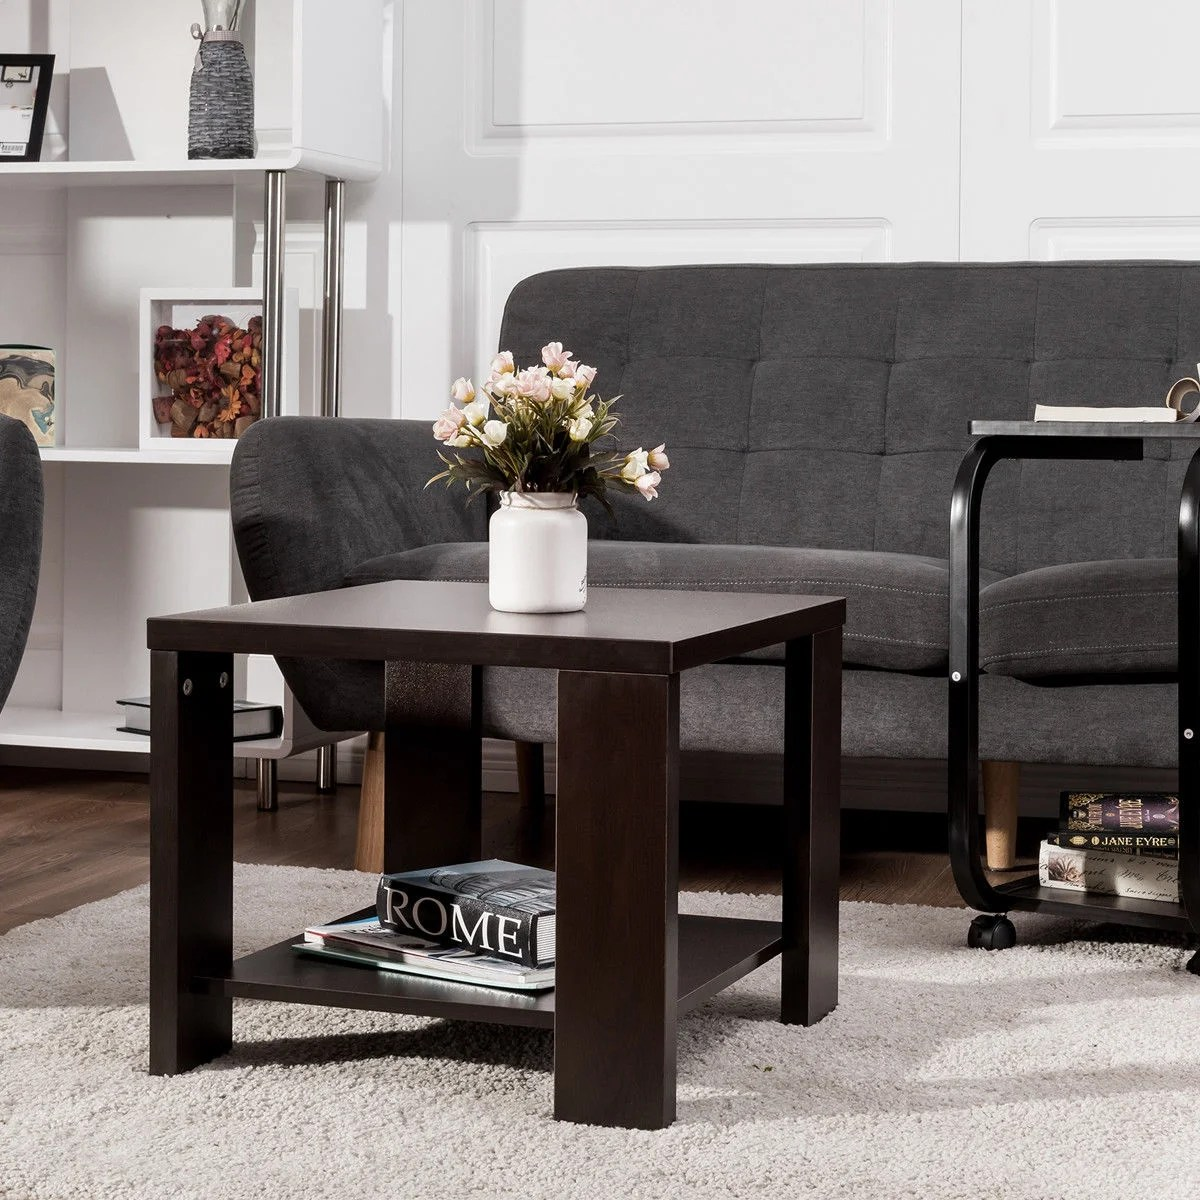 End Table For Living Room Costway End Table Square Coffee Tea Sofa Side Living Room Furniture With Storage Shelf